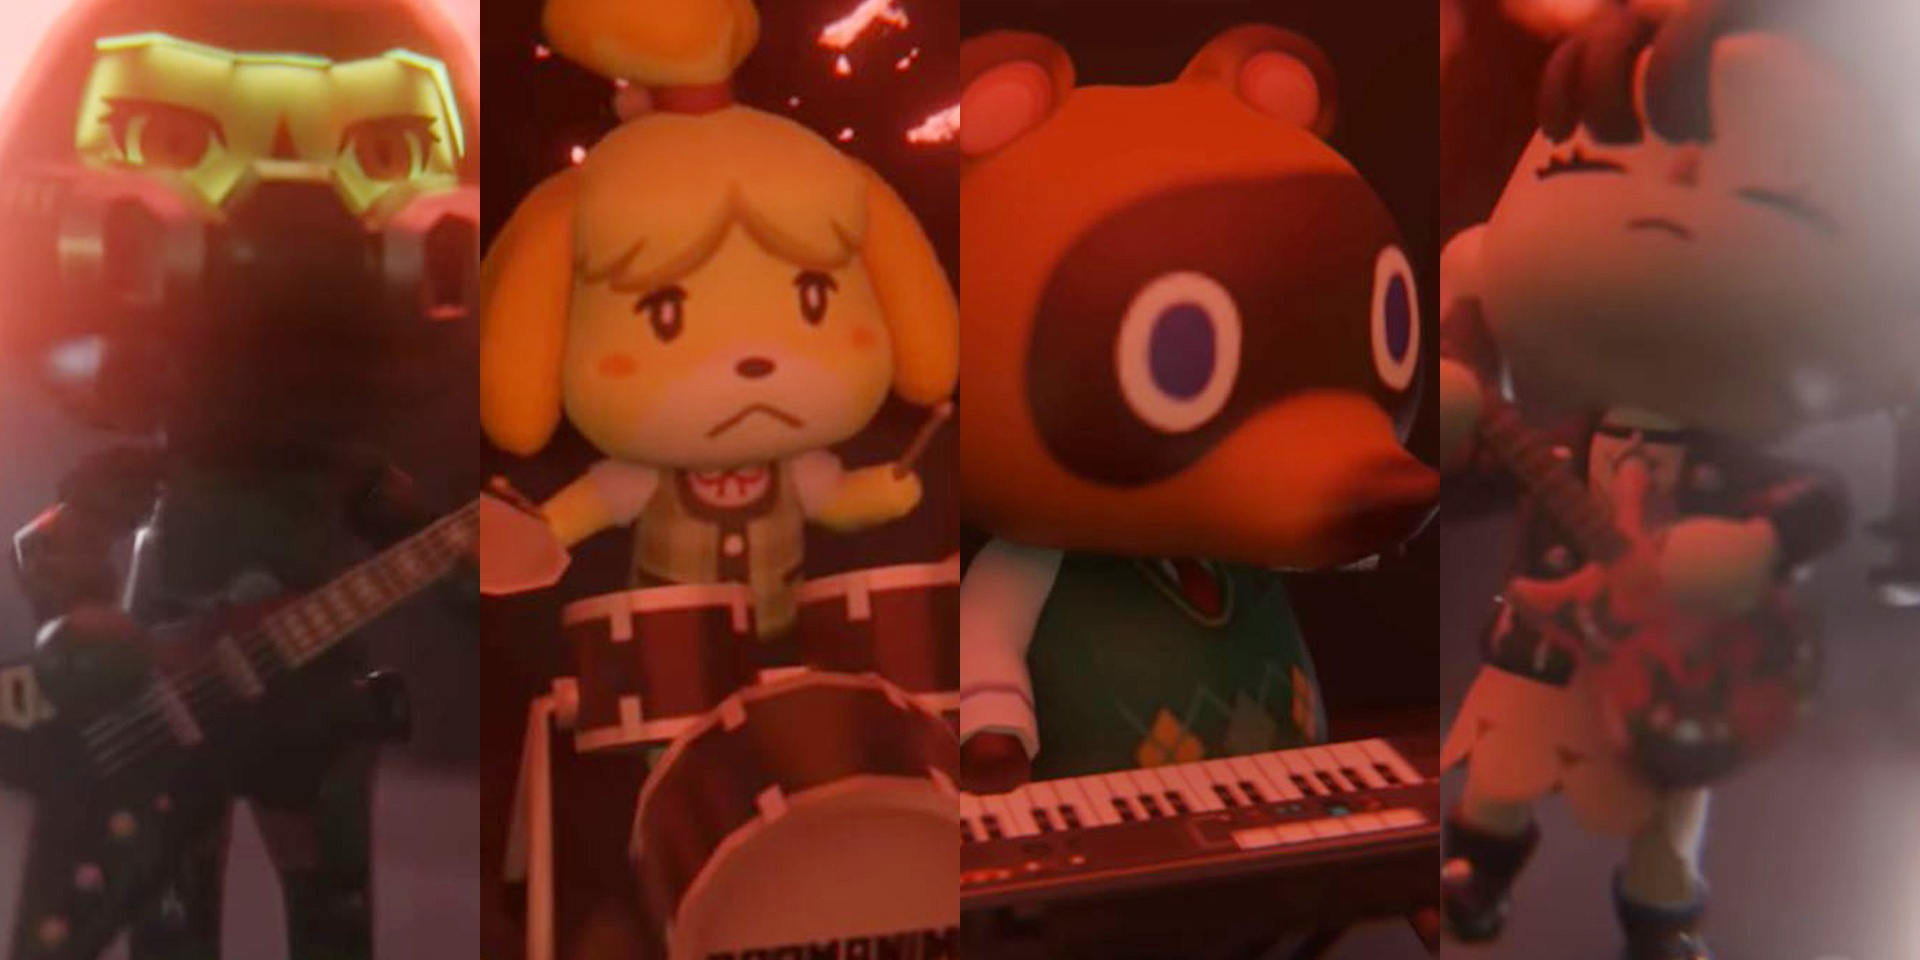 This is what happens when Doom and Animal Crossing come together to form a heavy metal band – watch